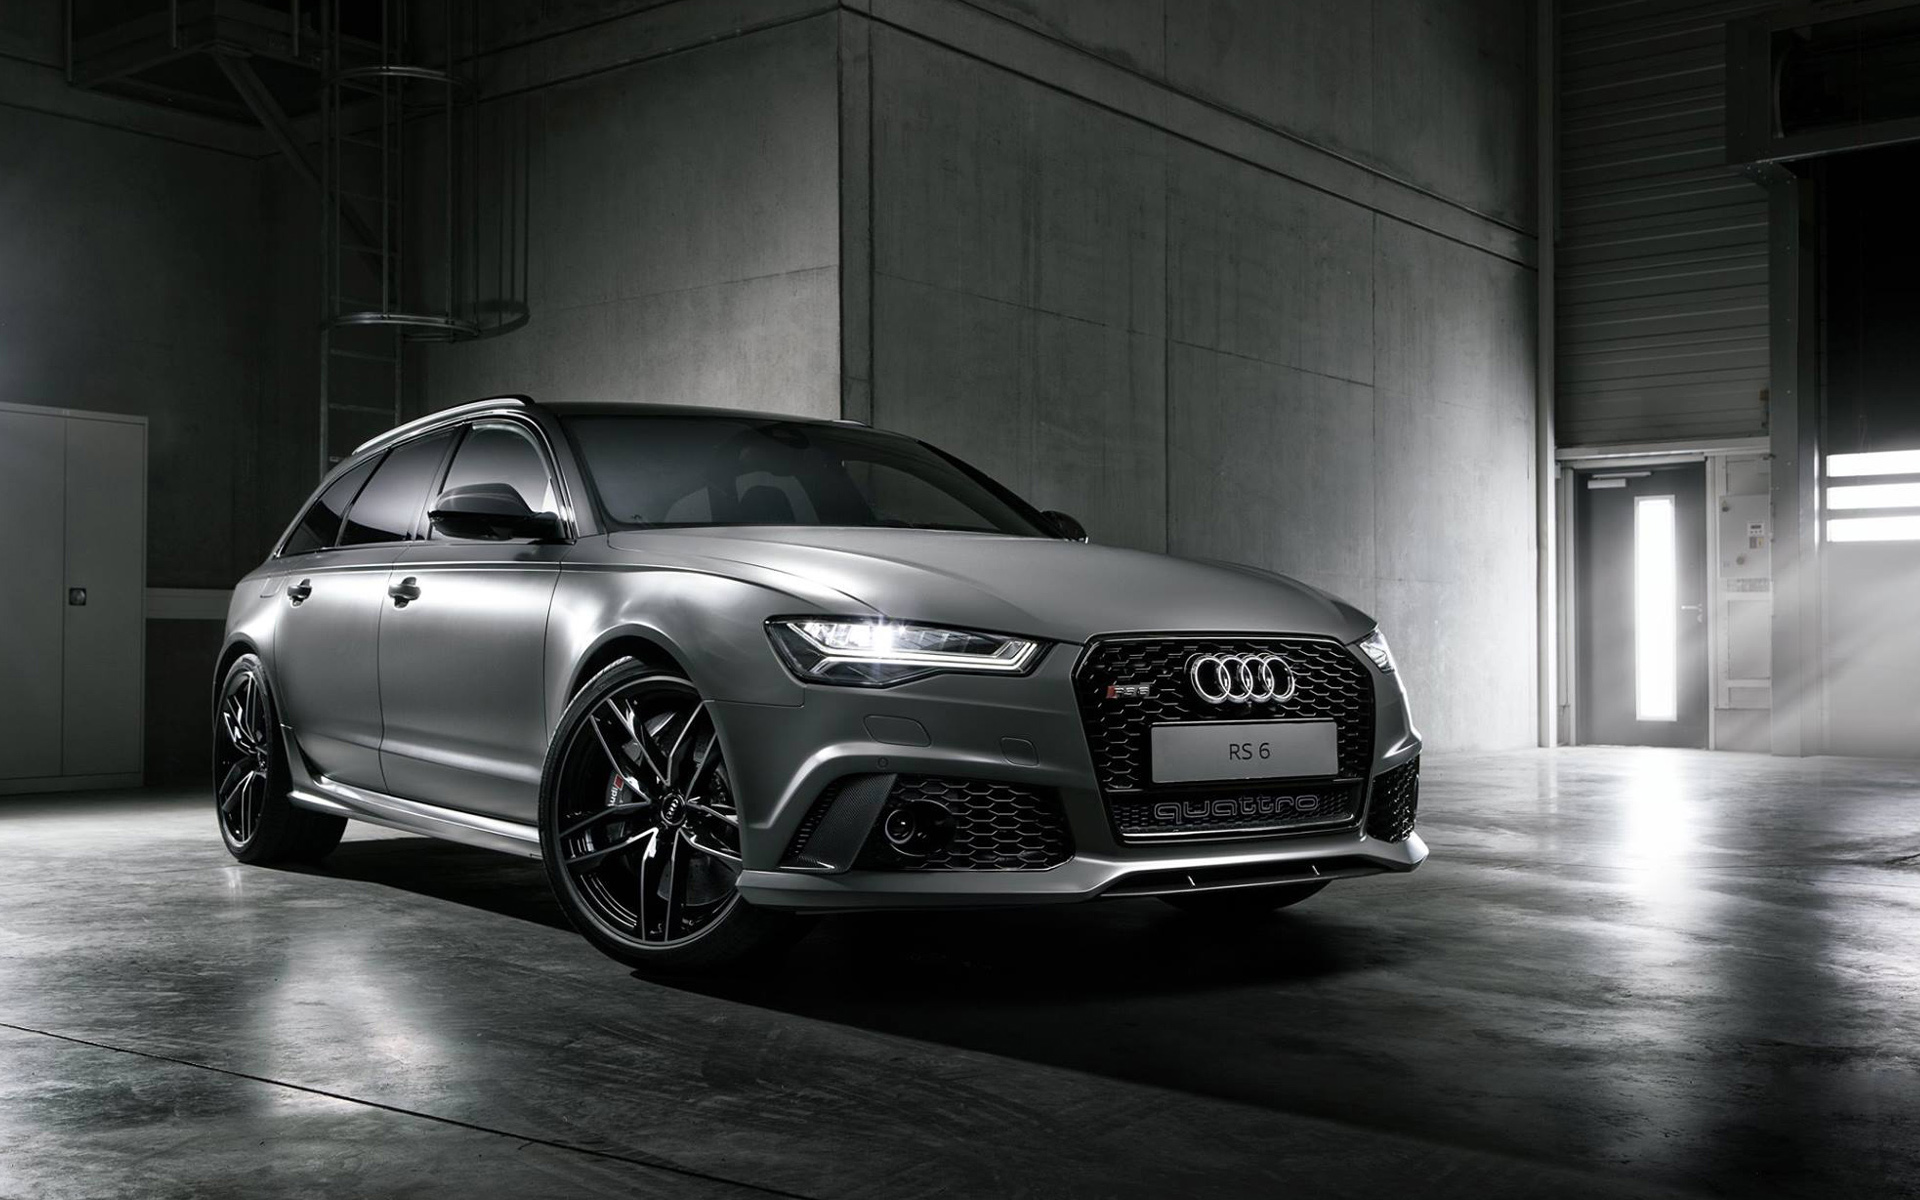 2015 audi rs6 avant exclusive wallpaper hd car wallpapers id 5016. Black Bedroom Furniture Sets. Home Design Ideas